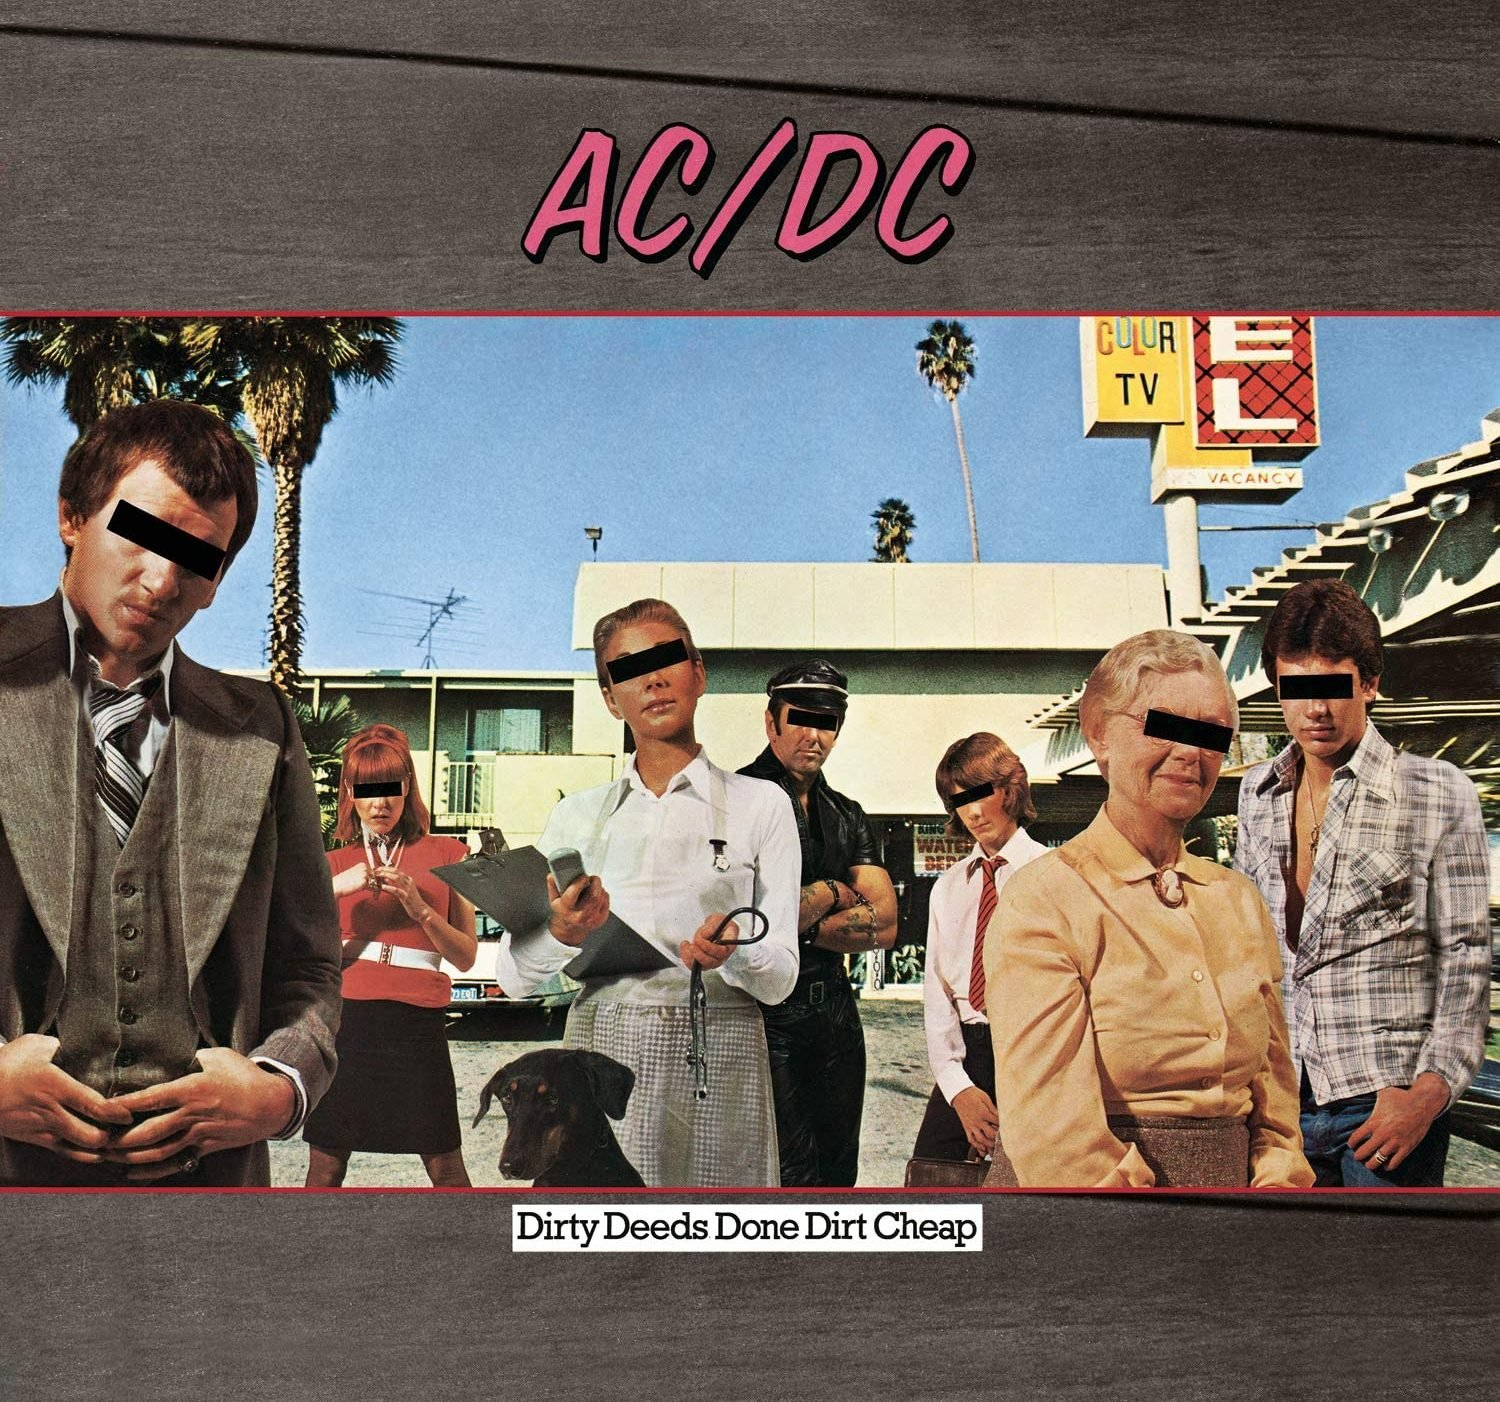 81jvggYGE4L. AC SL1500 e1616593503396 20 Things You Never Knew About AC/DC